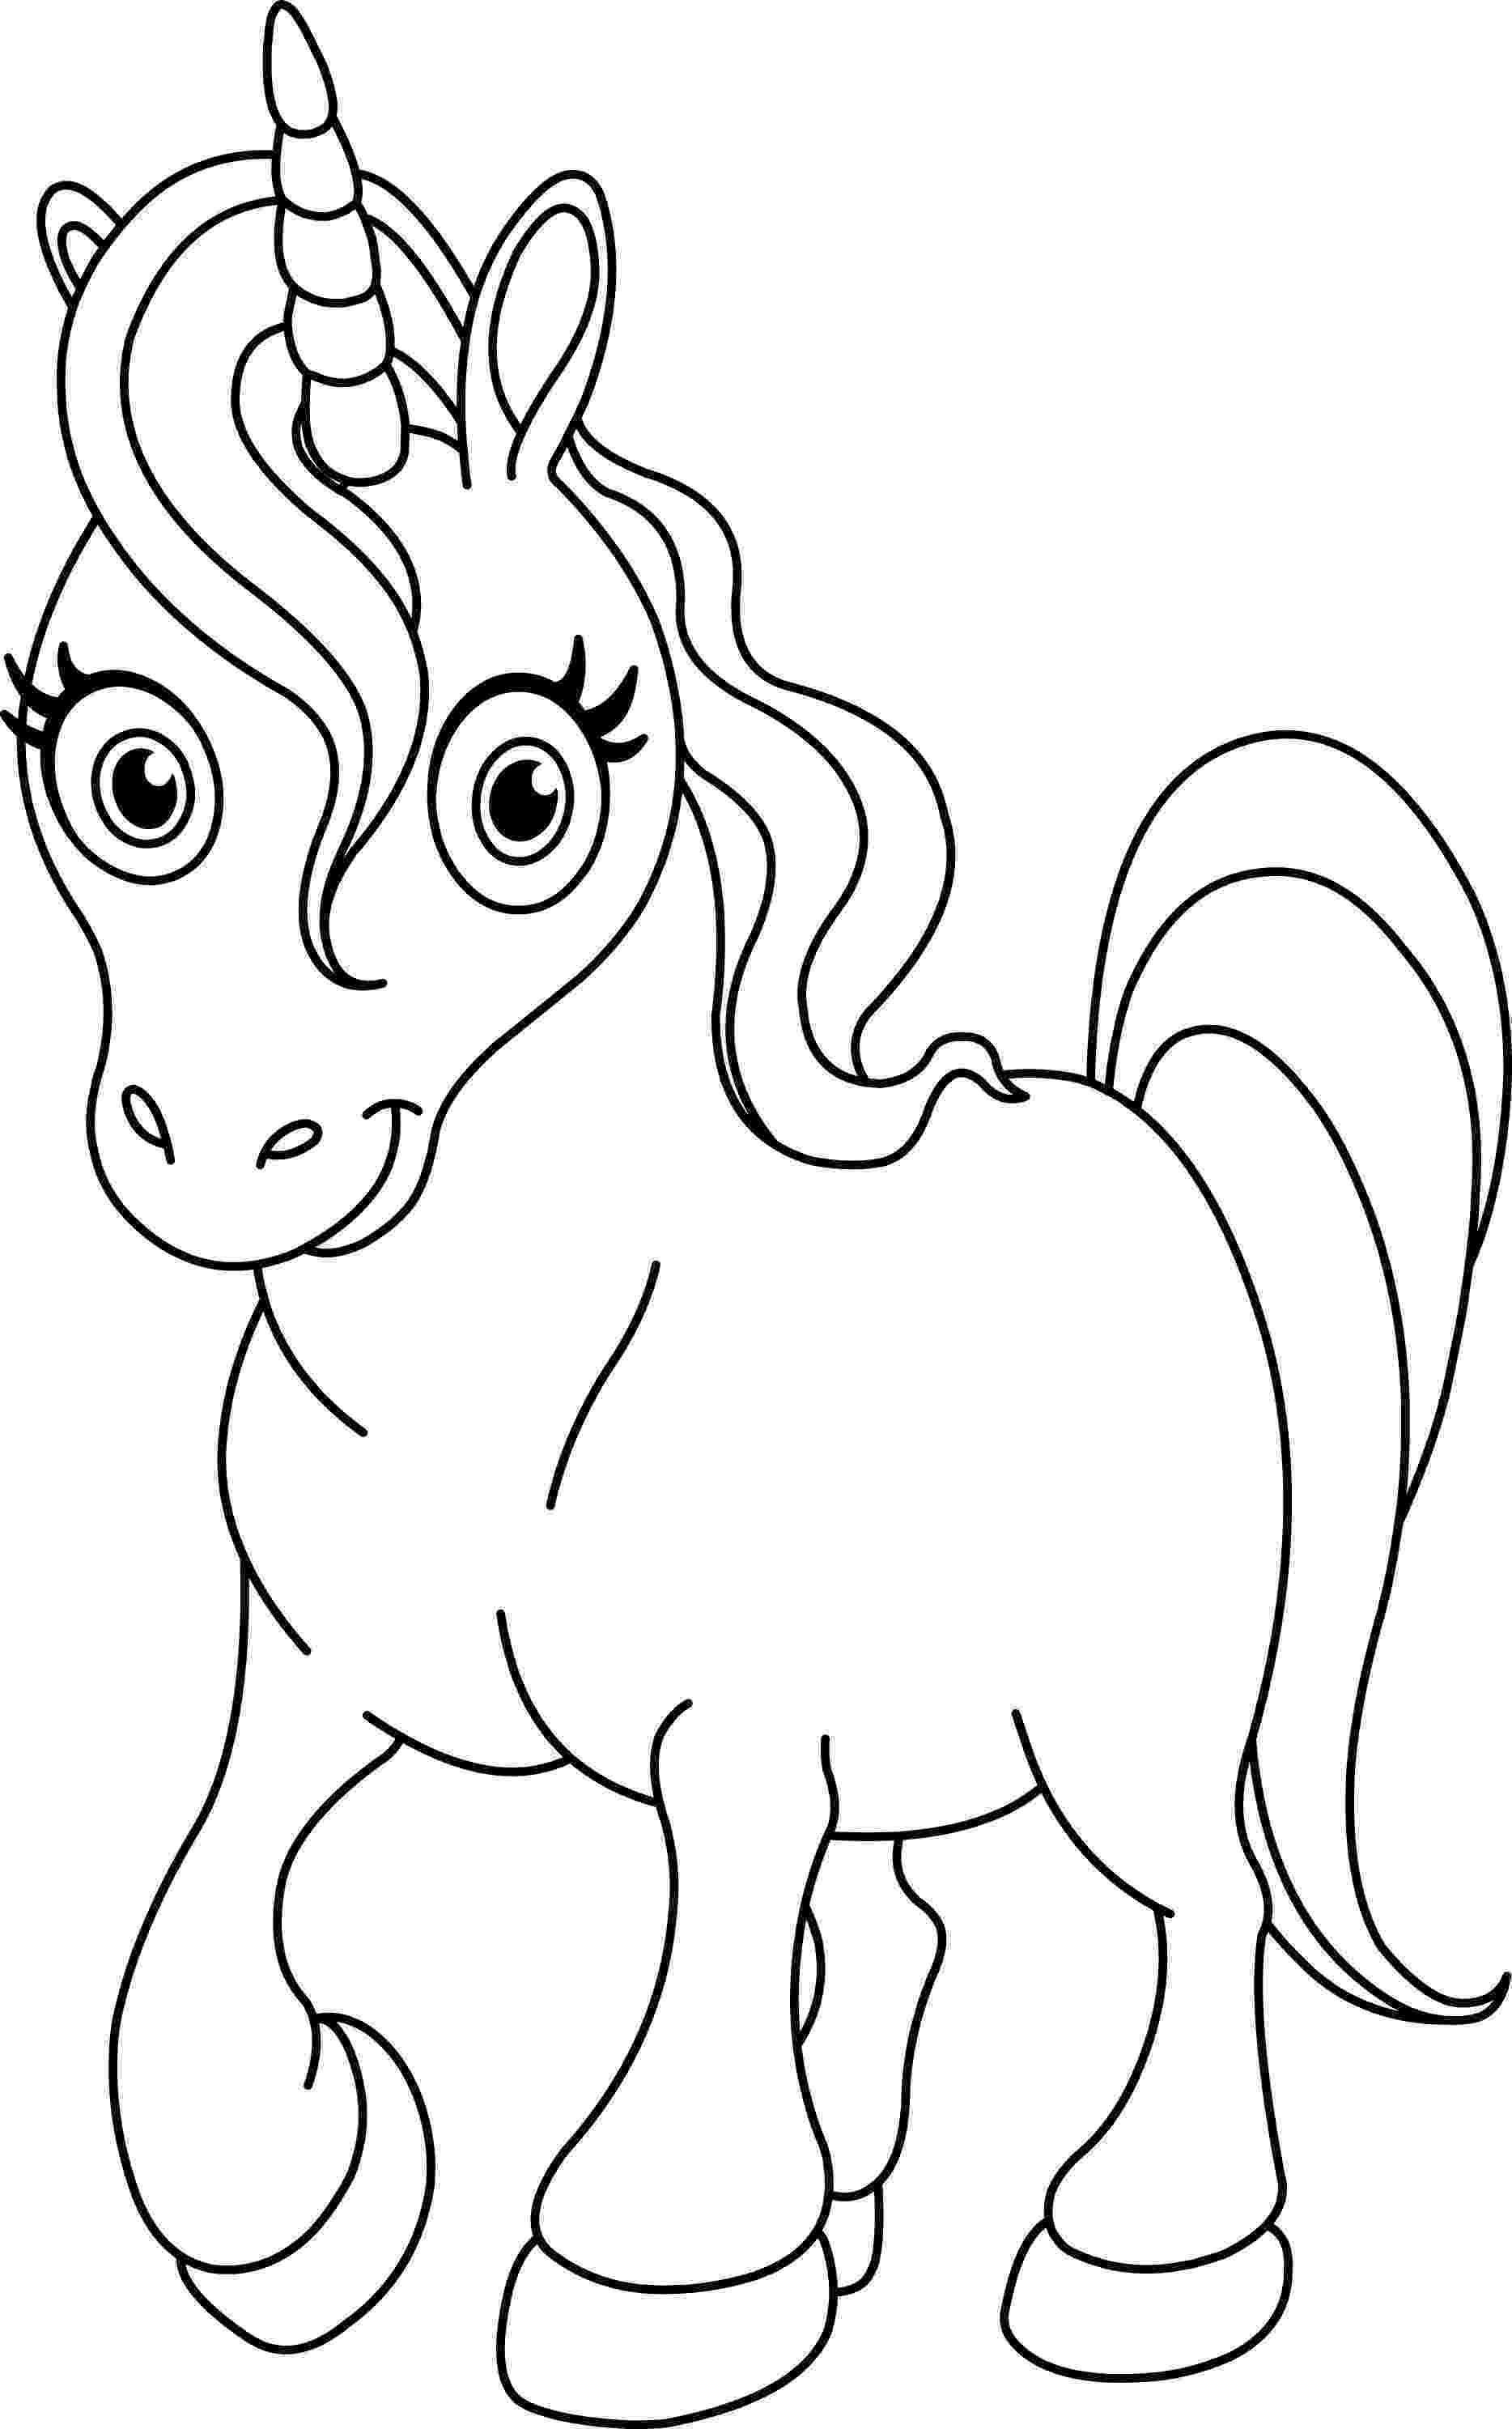 print out coloring pages lisa frank coloring pages to download and print for free out pages coloring print